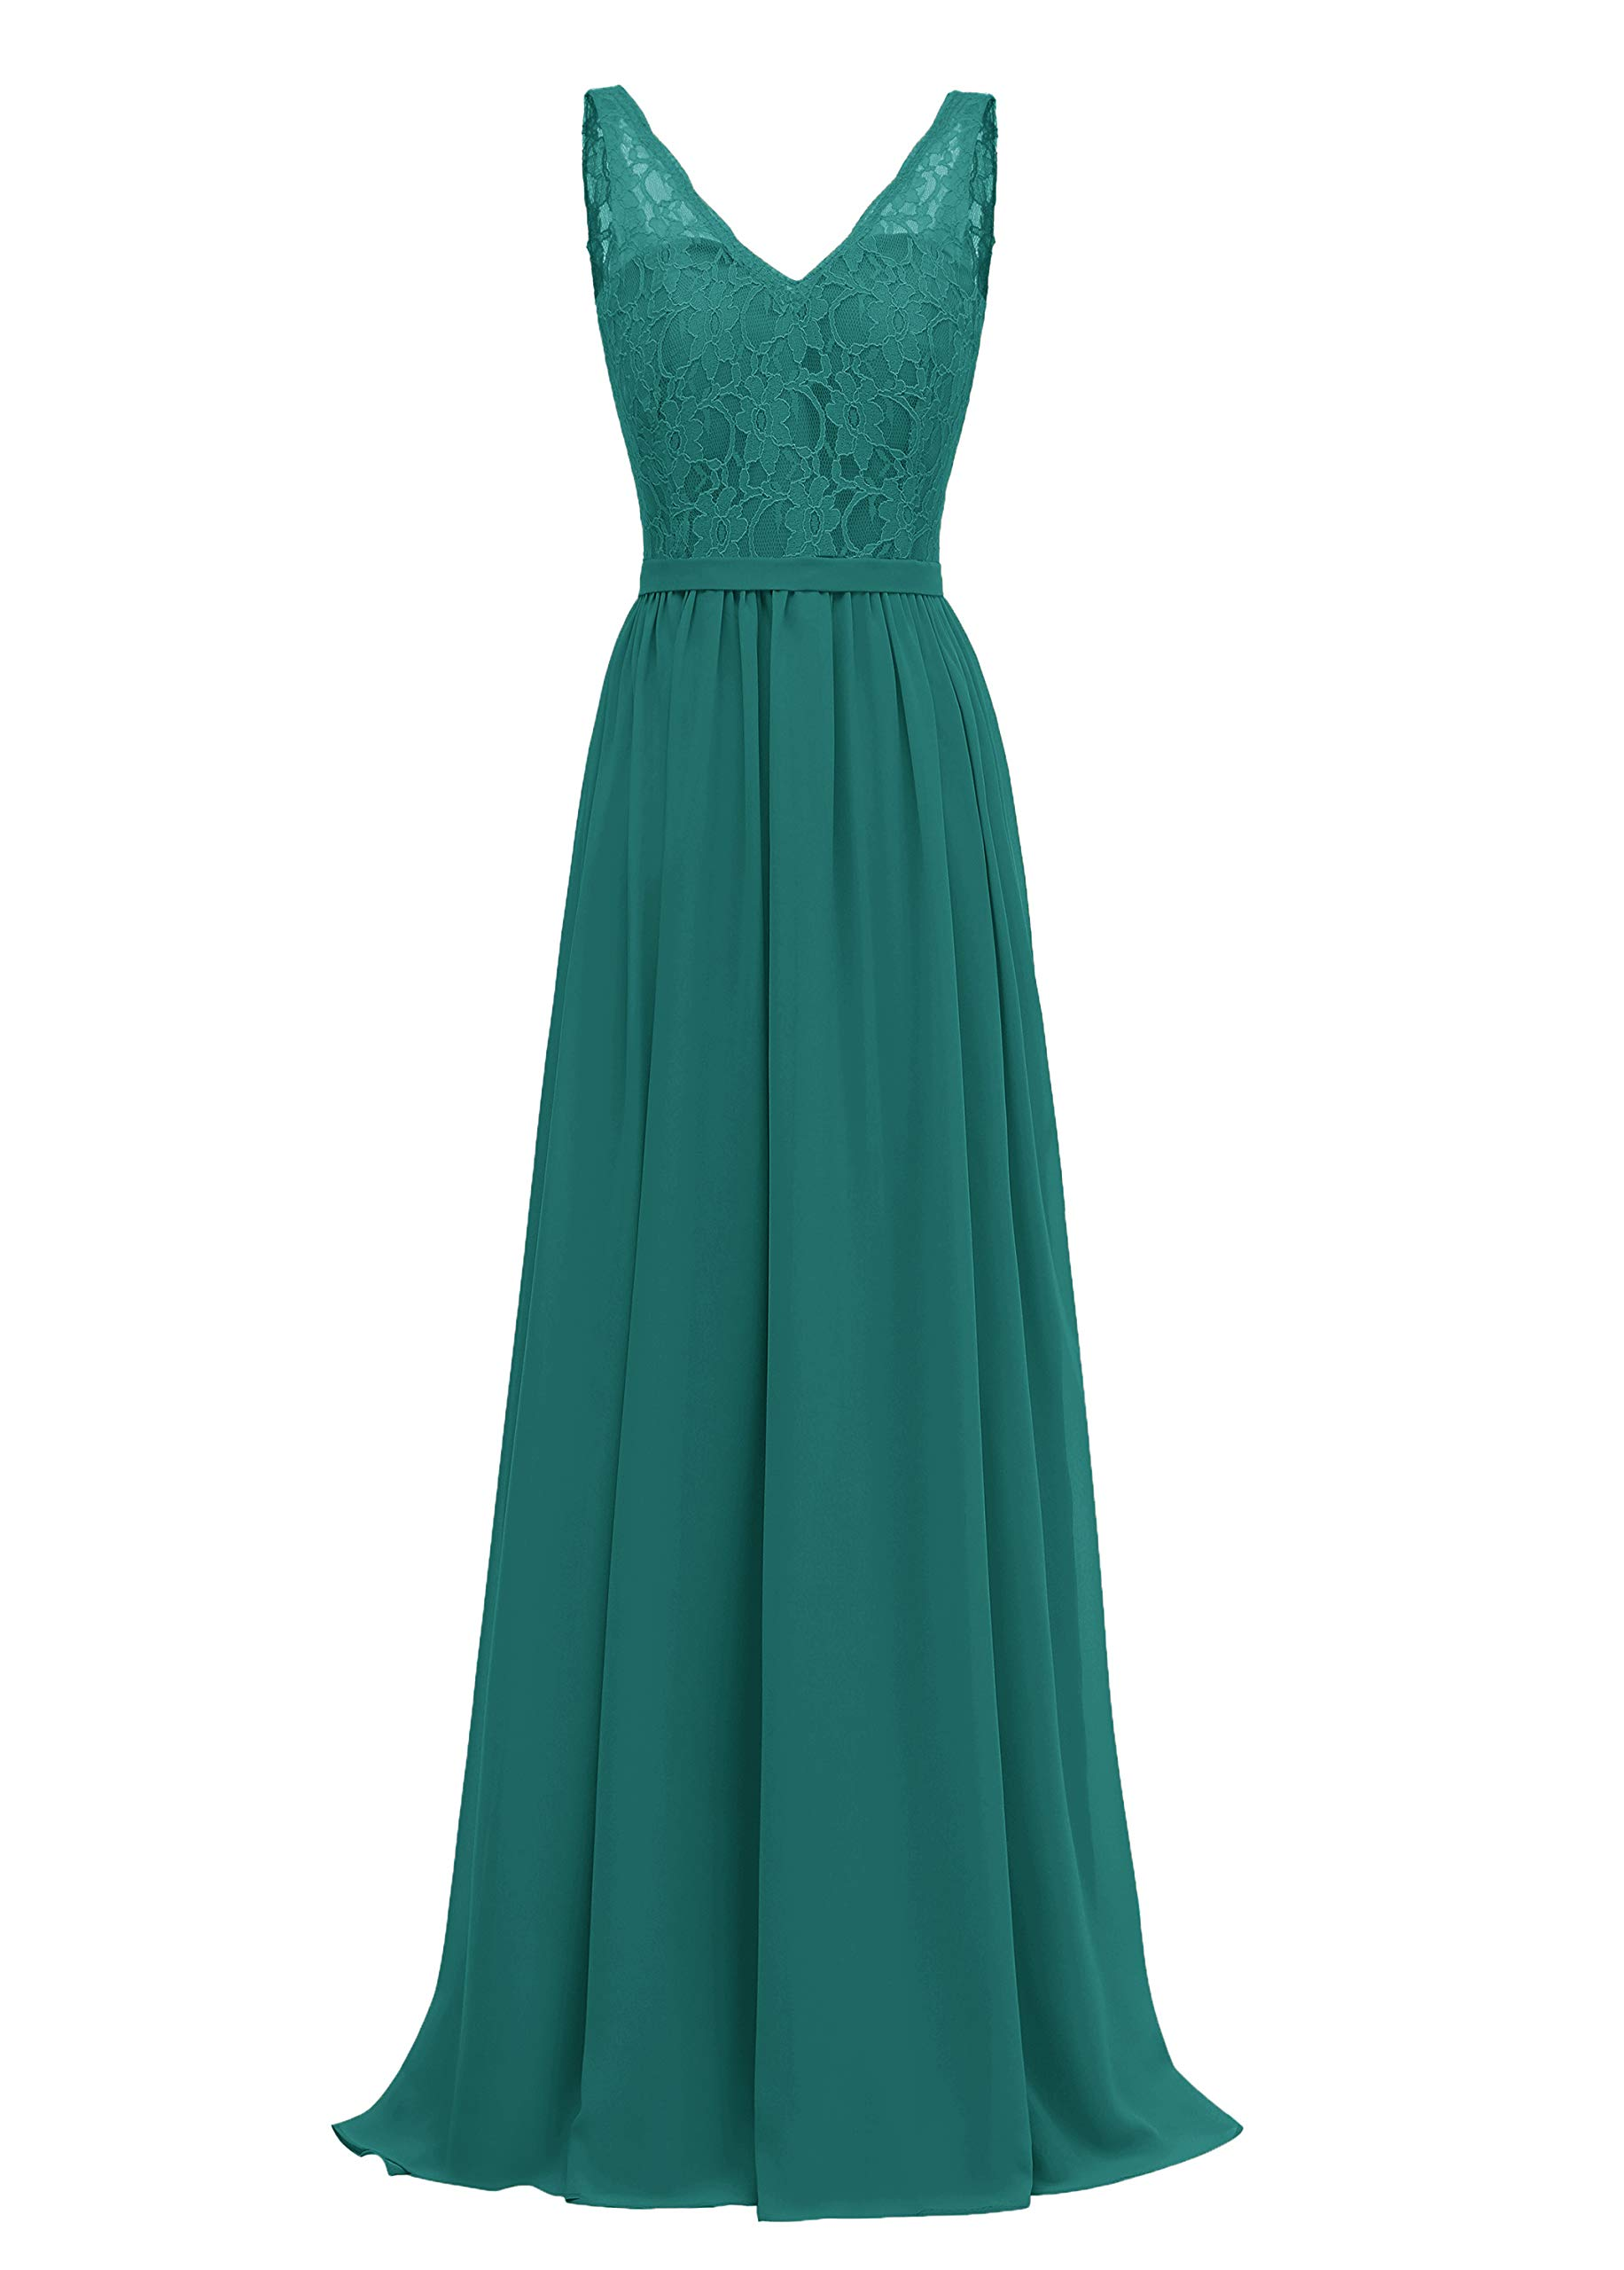 Available at Amazon: Zhongde Women's A-Line V-Neck Bridesmaid Dress Long Evening Gown Lace Bodice